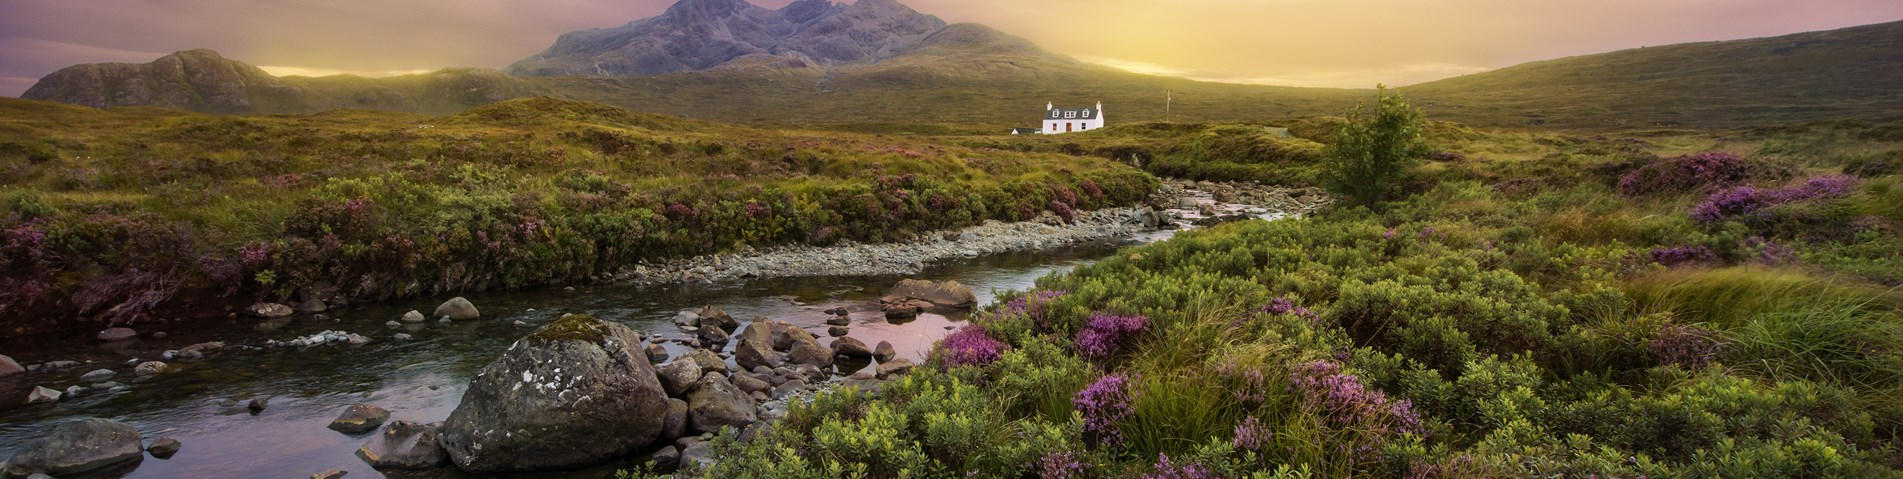 Glen with mountain heather and River Sligachan - Shutterstock.jpg